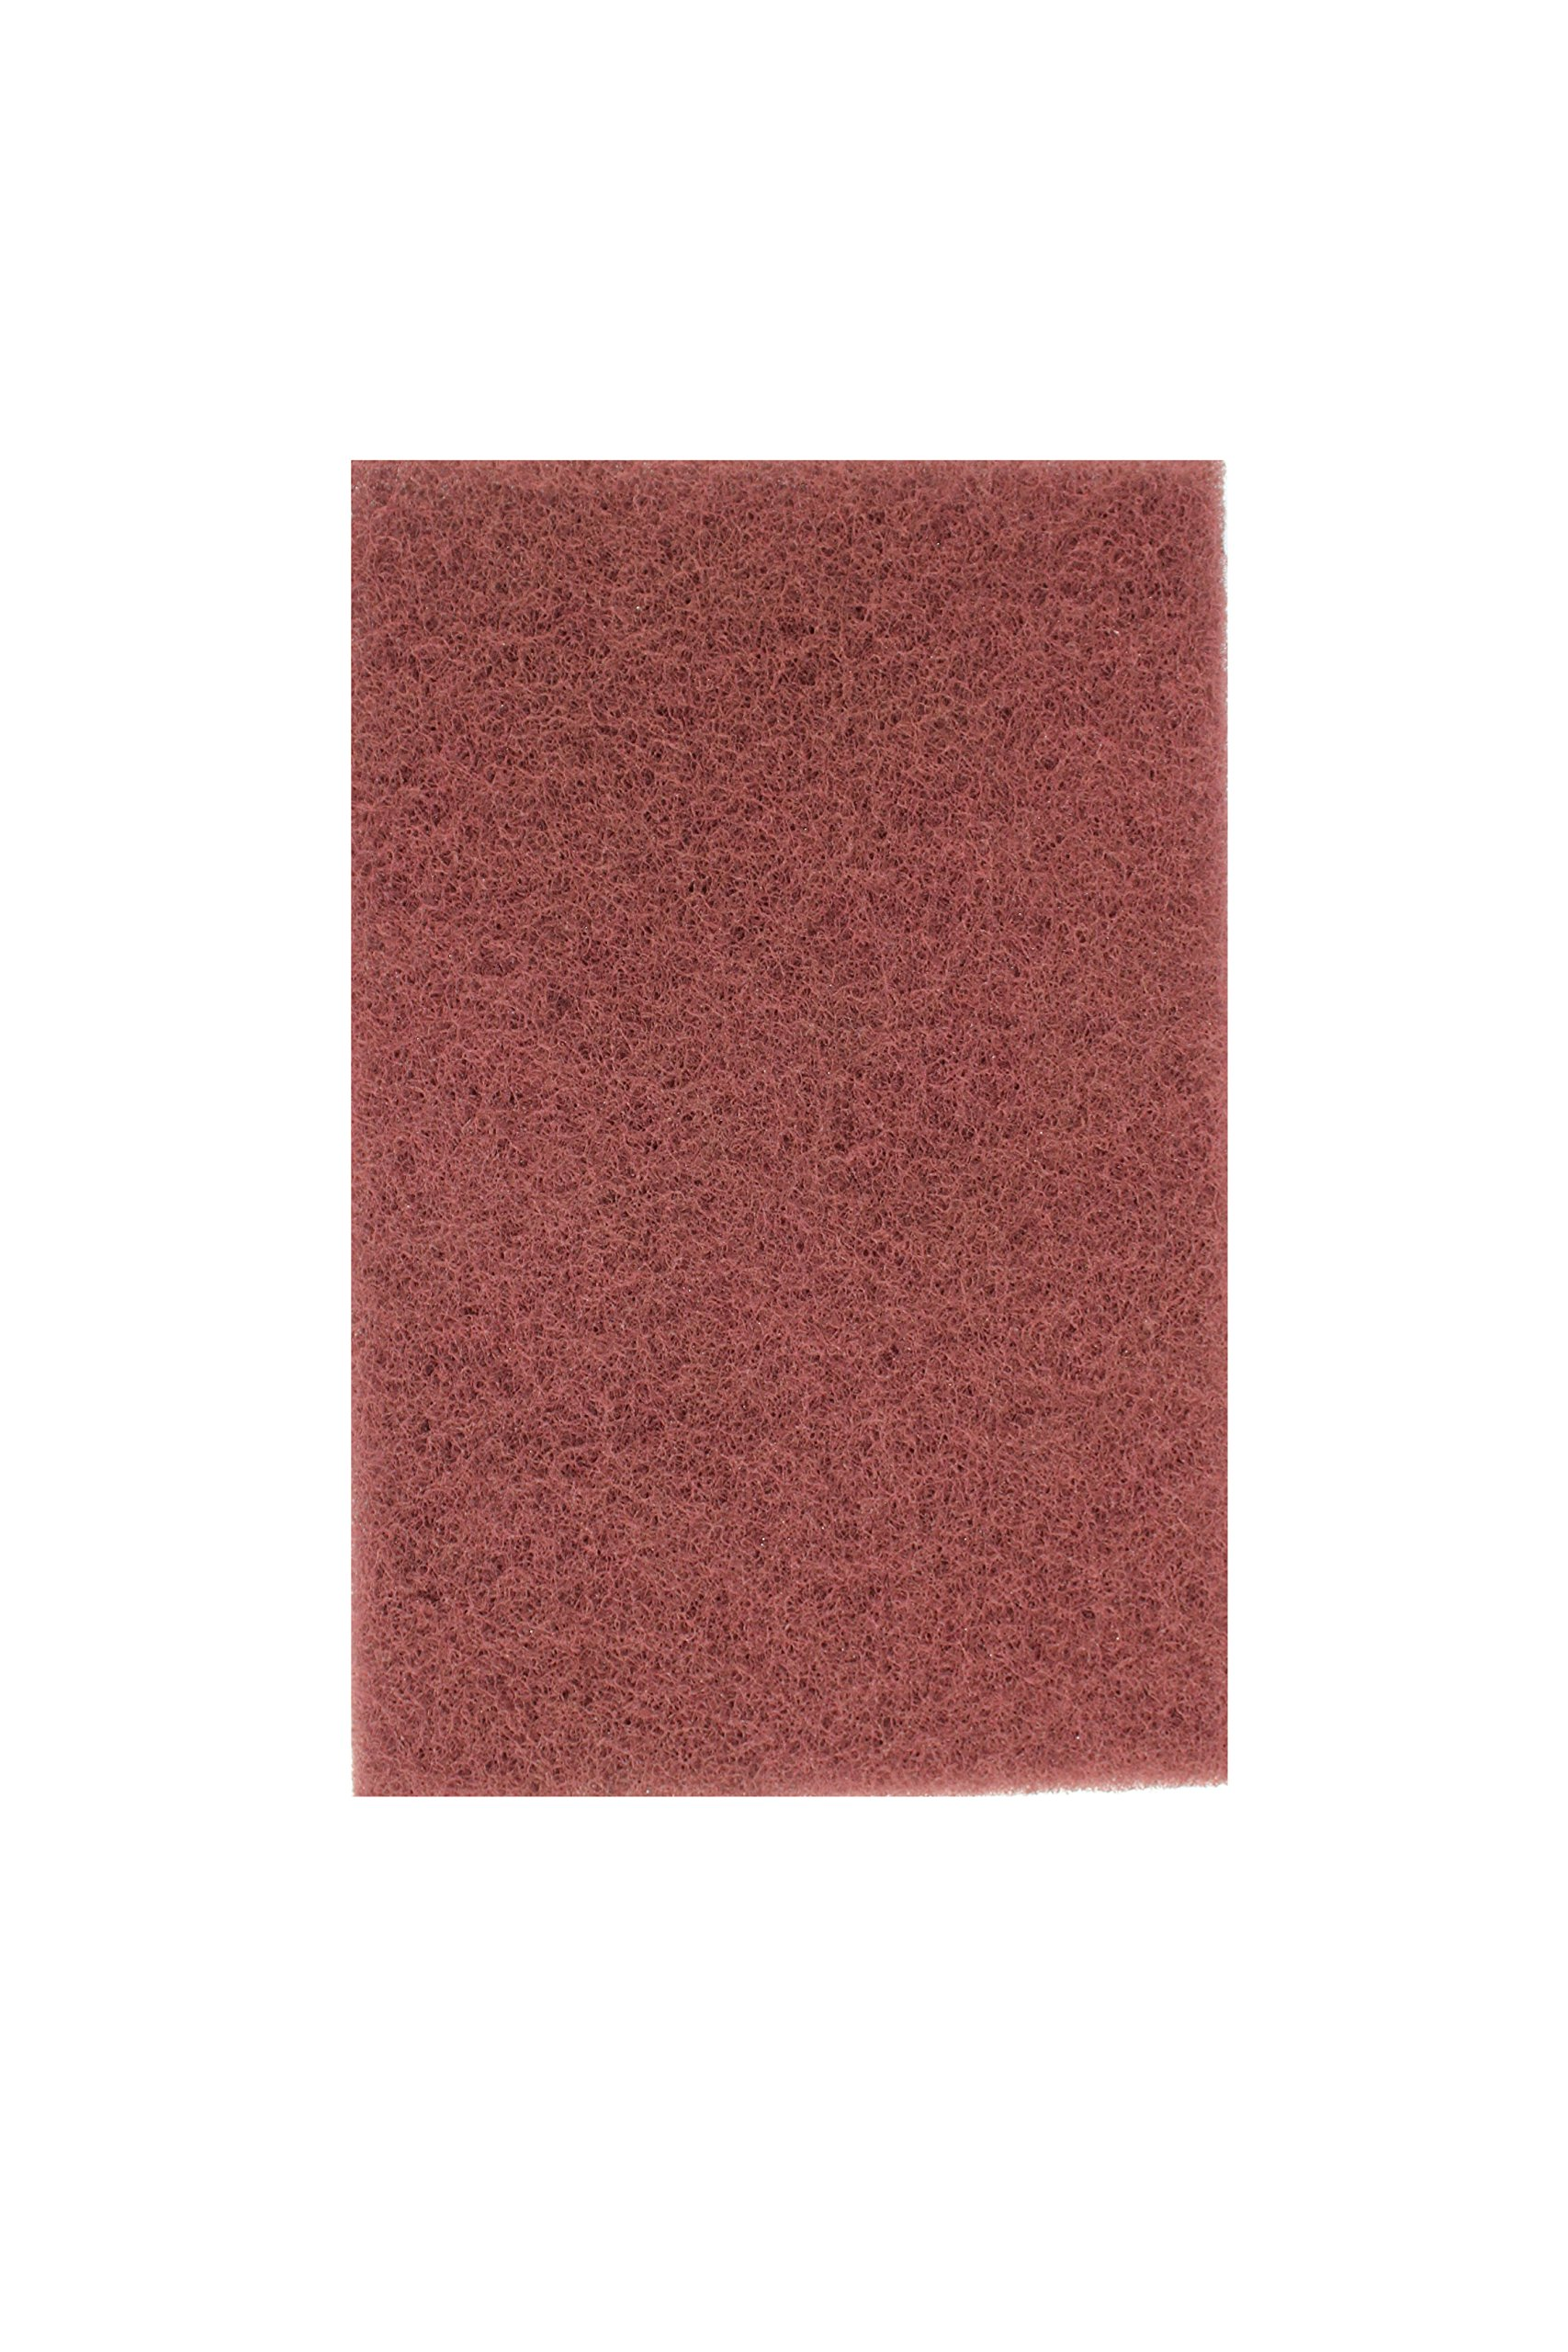 Sunmight 80100 1 Pack Maroon 6'' x 9'' Scuff Pad (Very Fine) by Sunmight